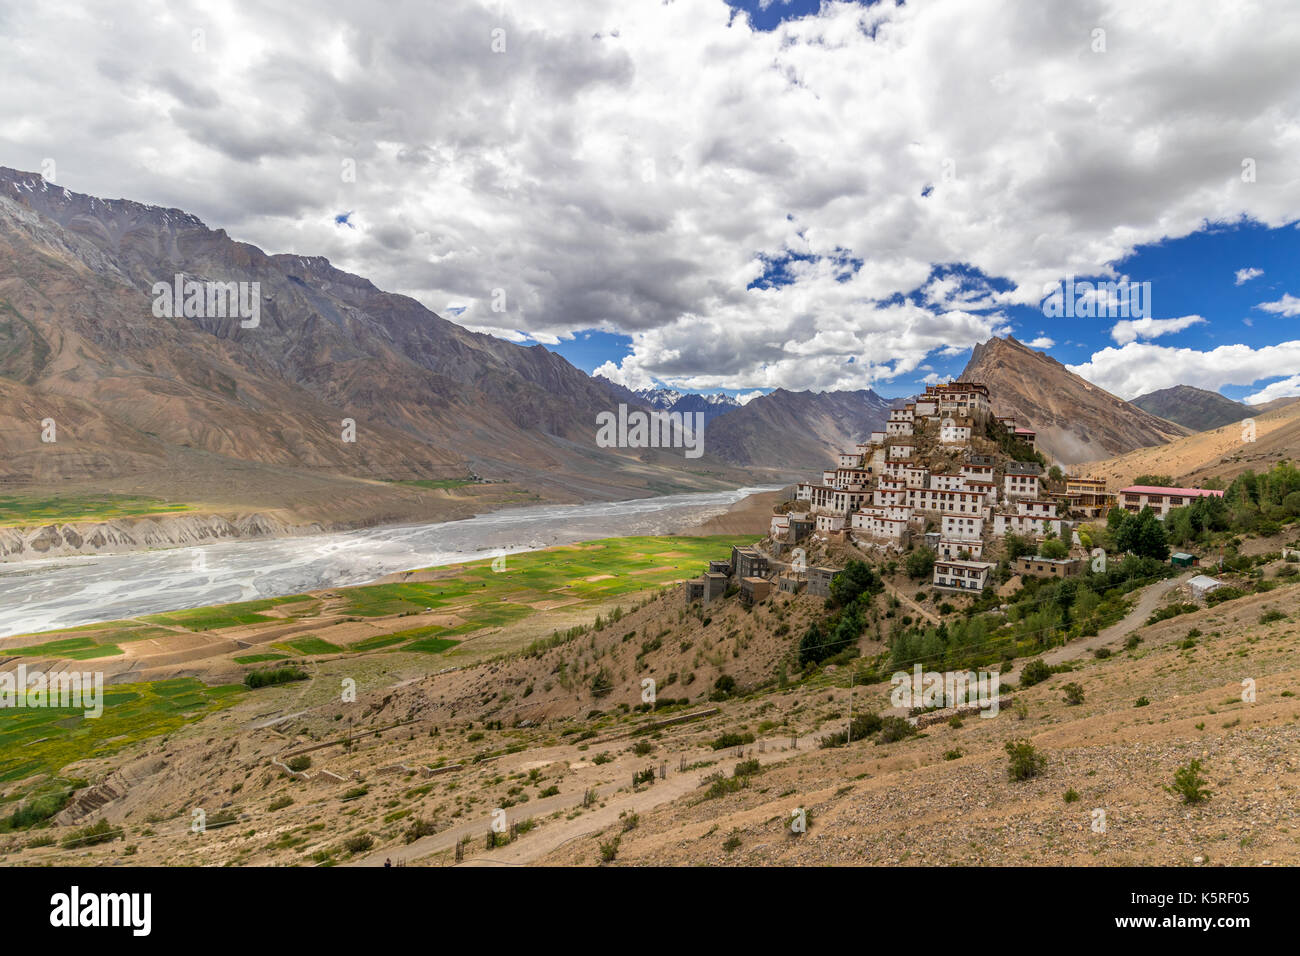 The Beautiful Monastery lying on the Mountain, above Spiti River, in the Vally - Stock Image